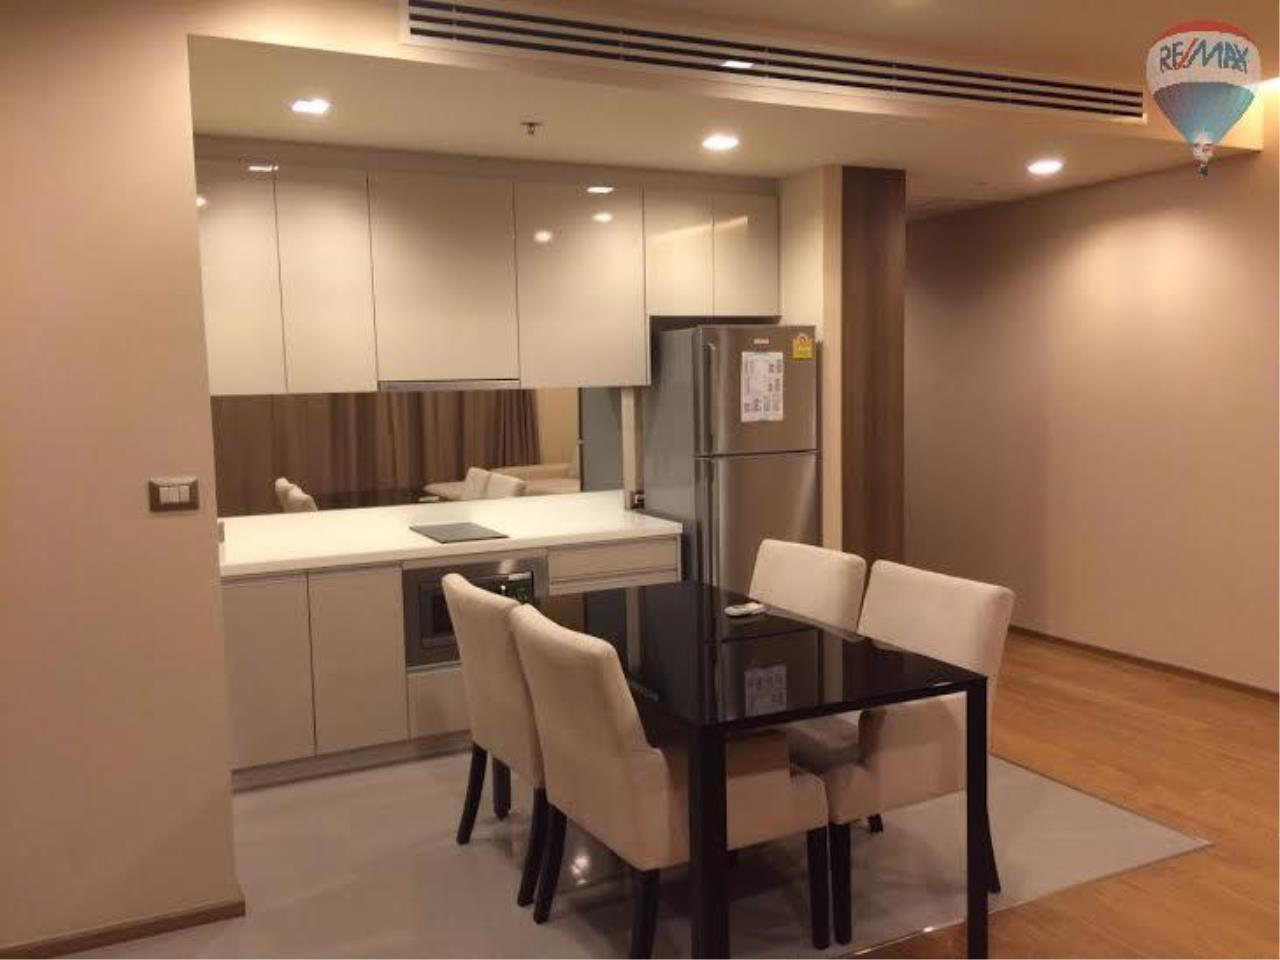 RE/MAX Properties Agency's 2 Bedrooms 80.5 Sq.M. for renting 60K in The Address Sathorn 1